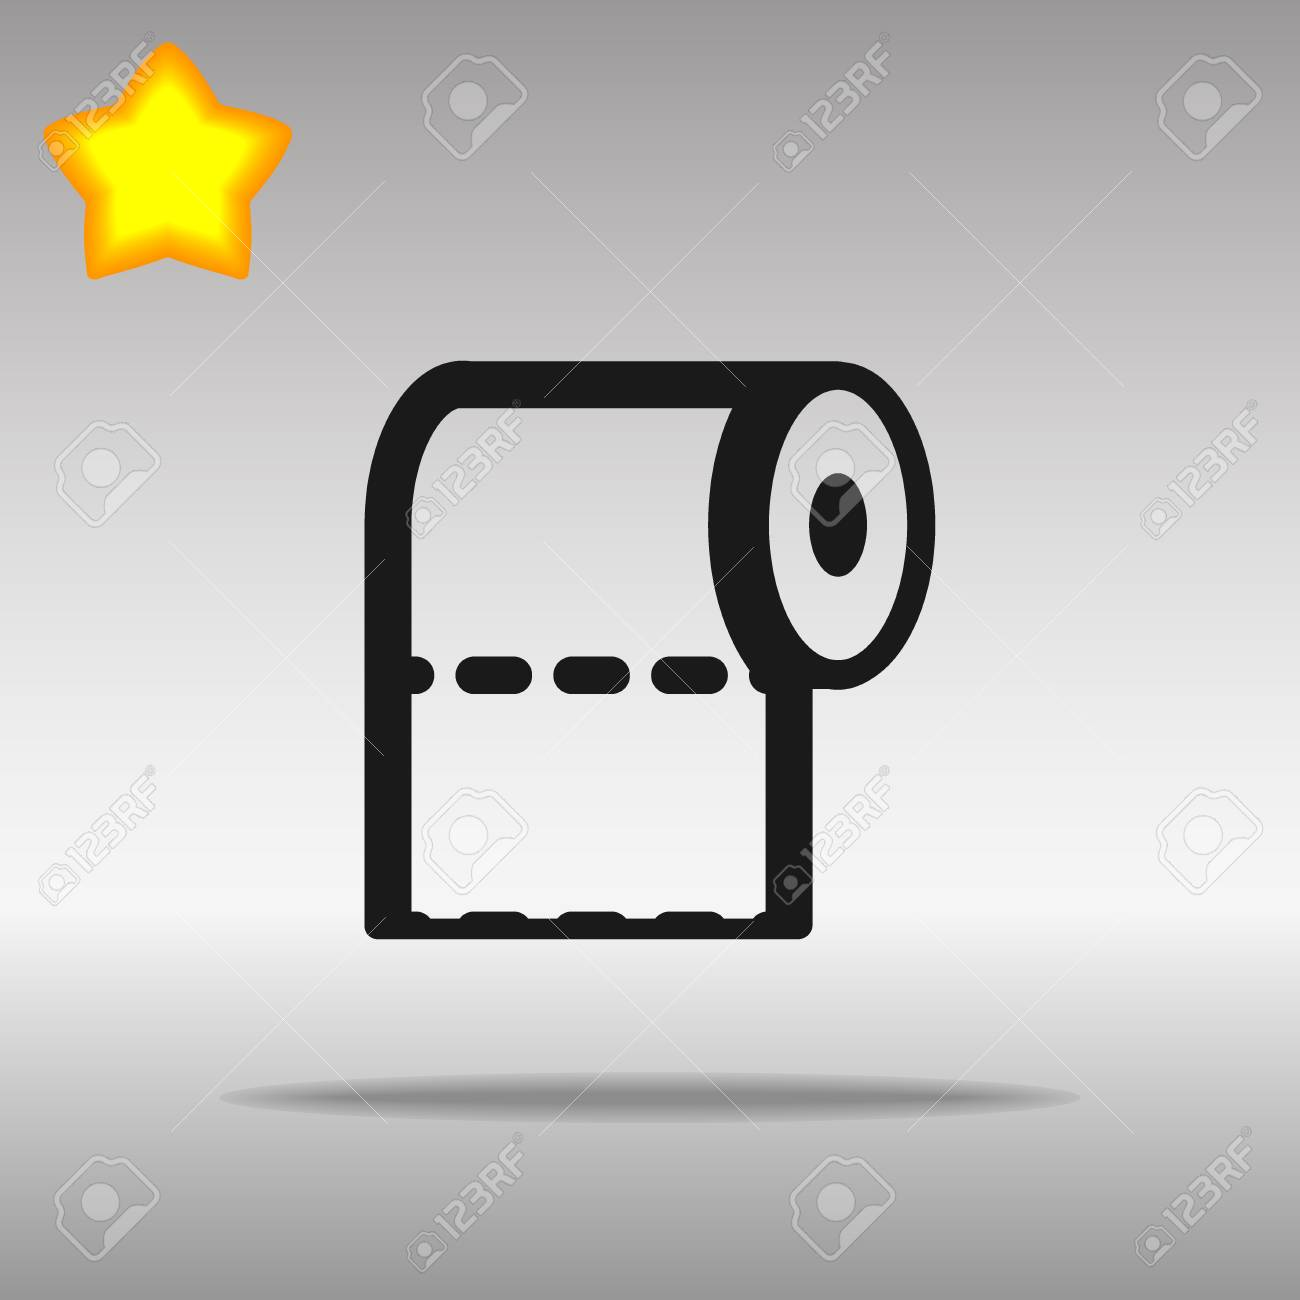 toilet paper black Icon button logo symbol concept high quality on the gray background - 82176428